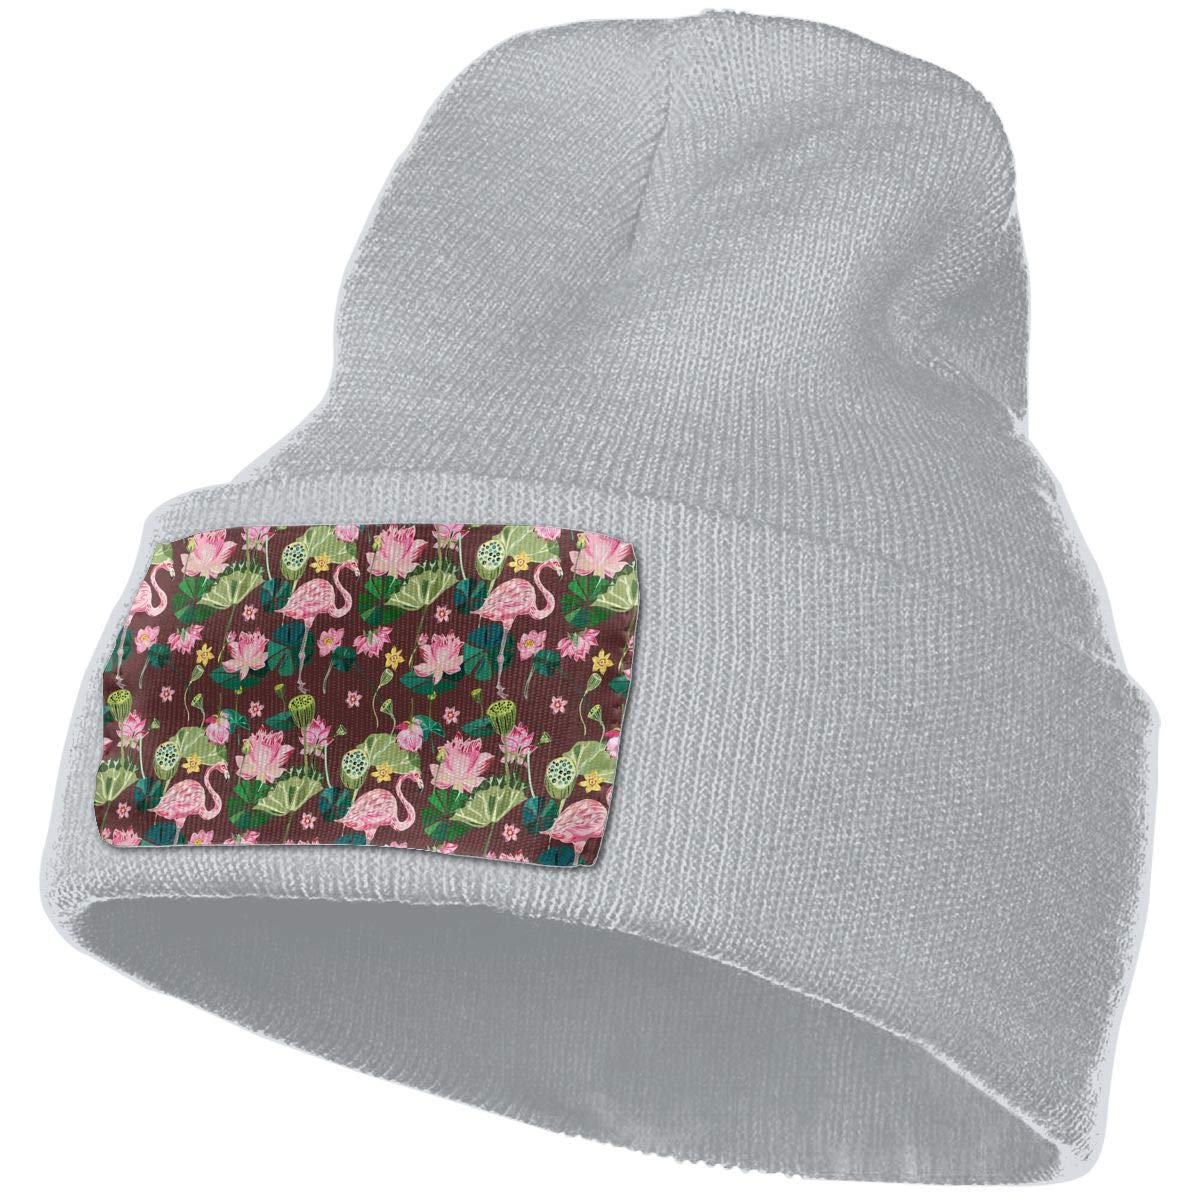 Tropical Seamless Flamingos Unisex Fashion Knitted Hat Luxury Hip-Hop Cap